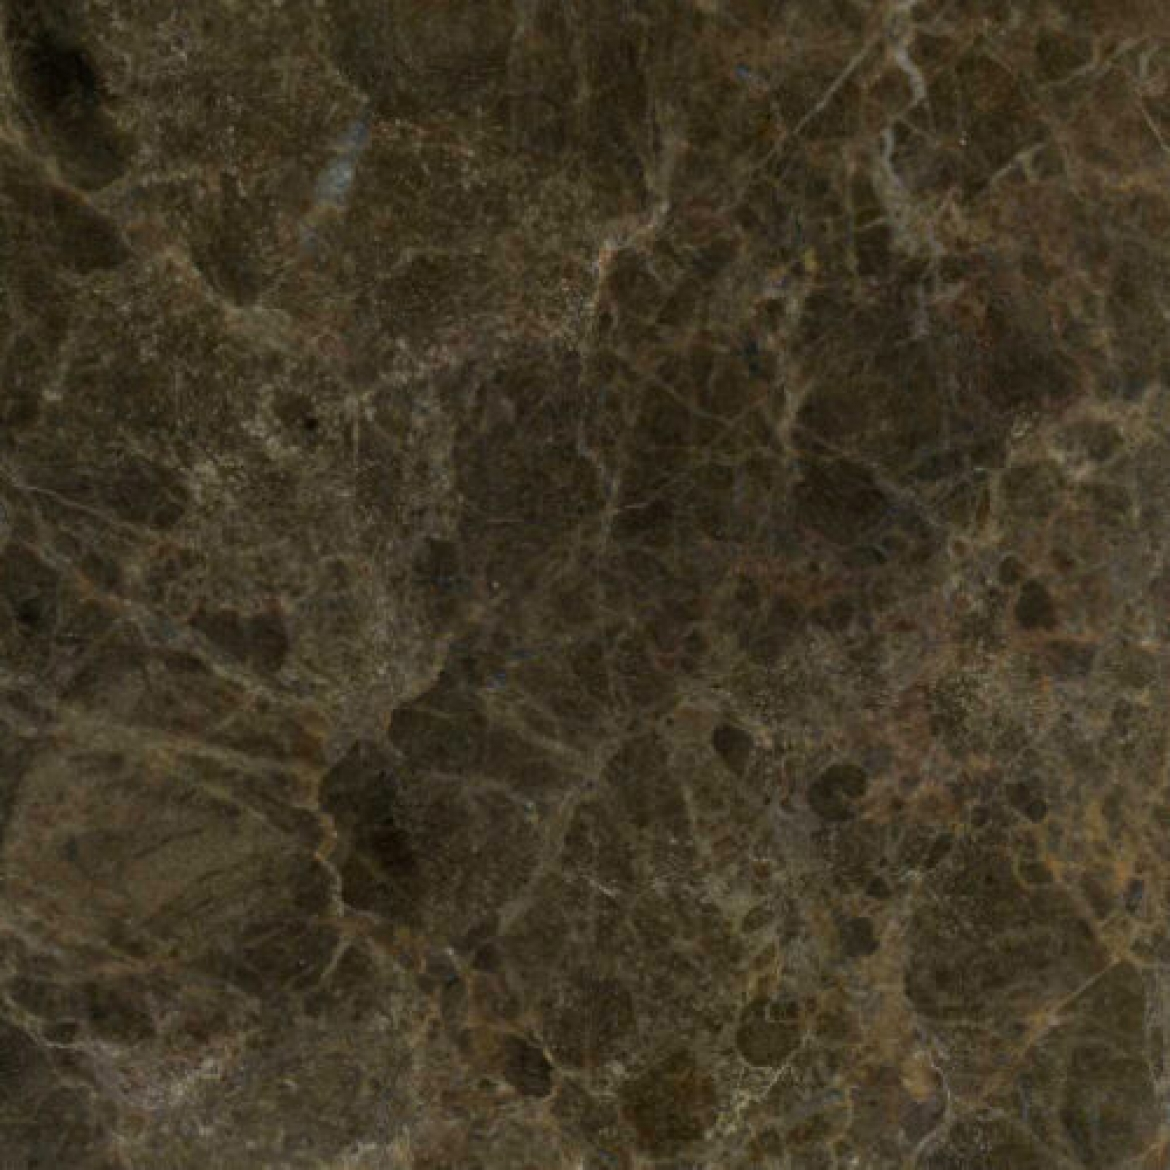 Coffee brown marble benchtop [2000×600 mm]